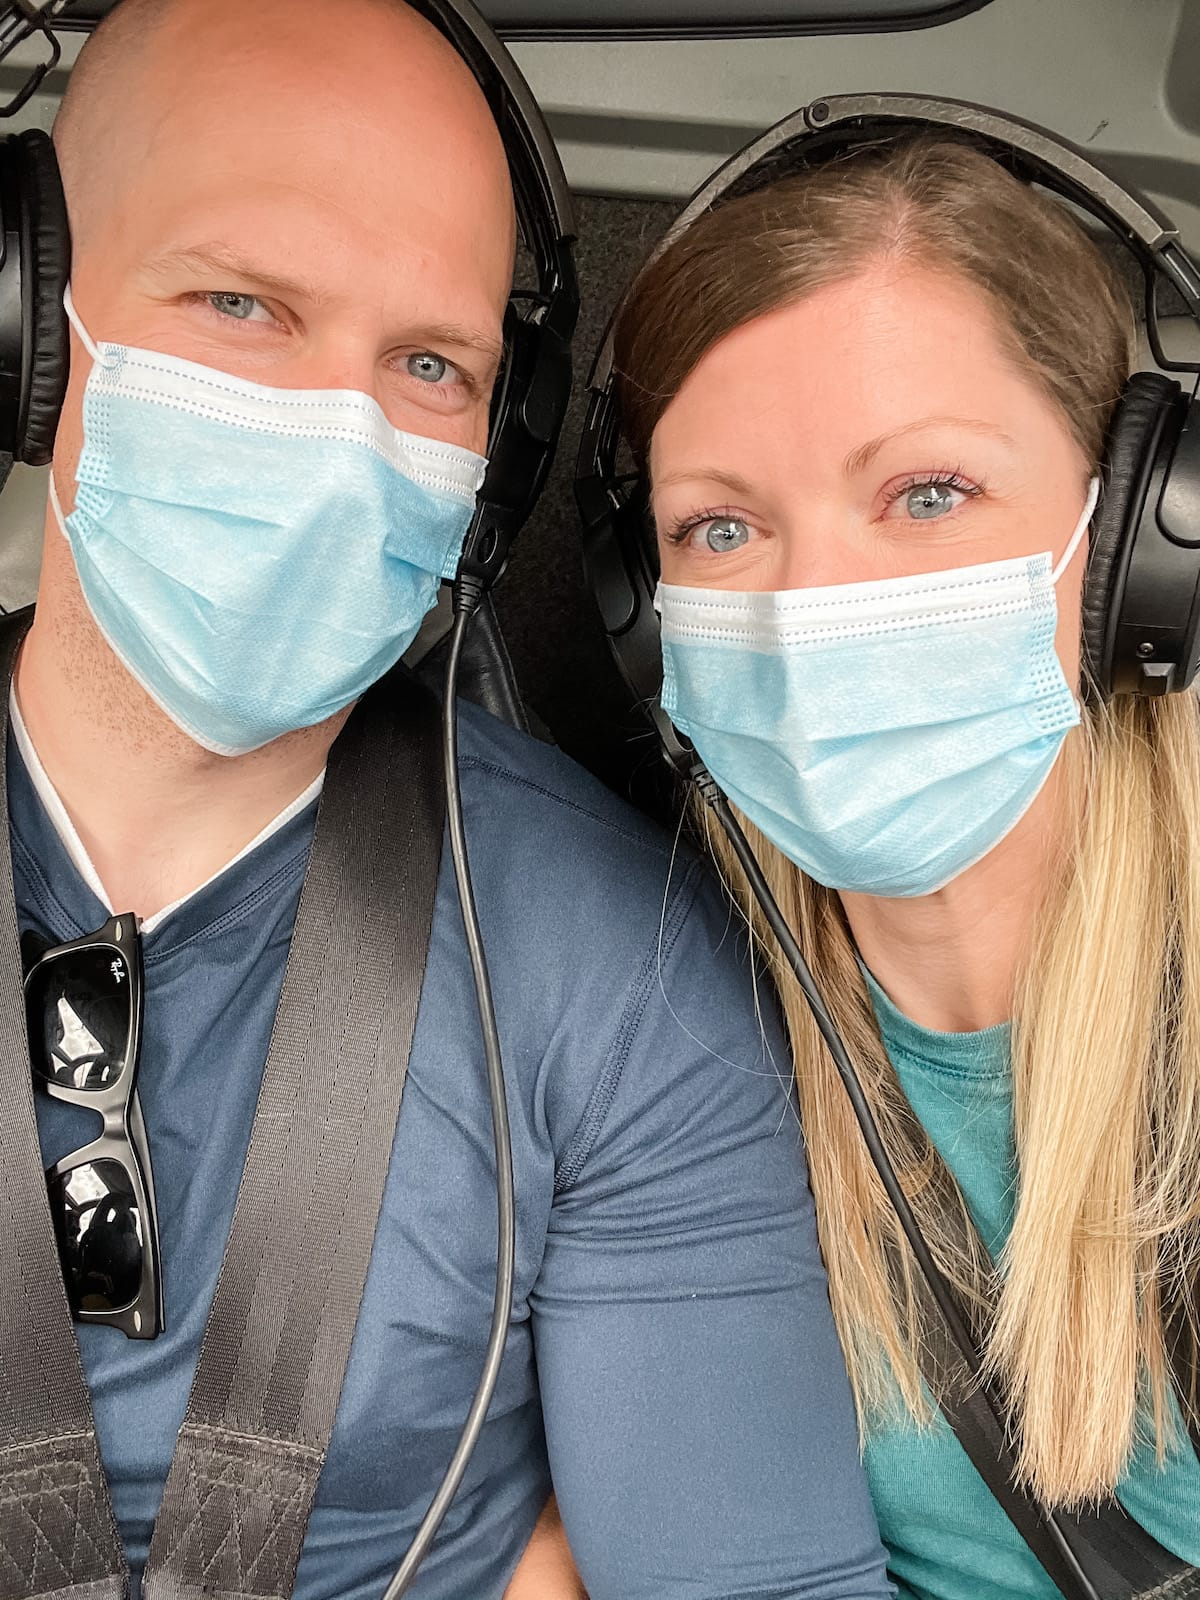 man and woman with masks on in helicopter